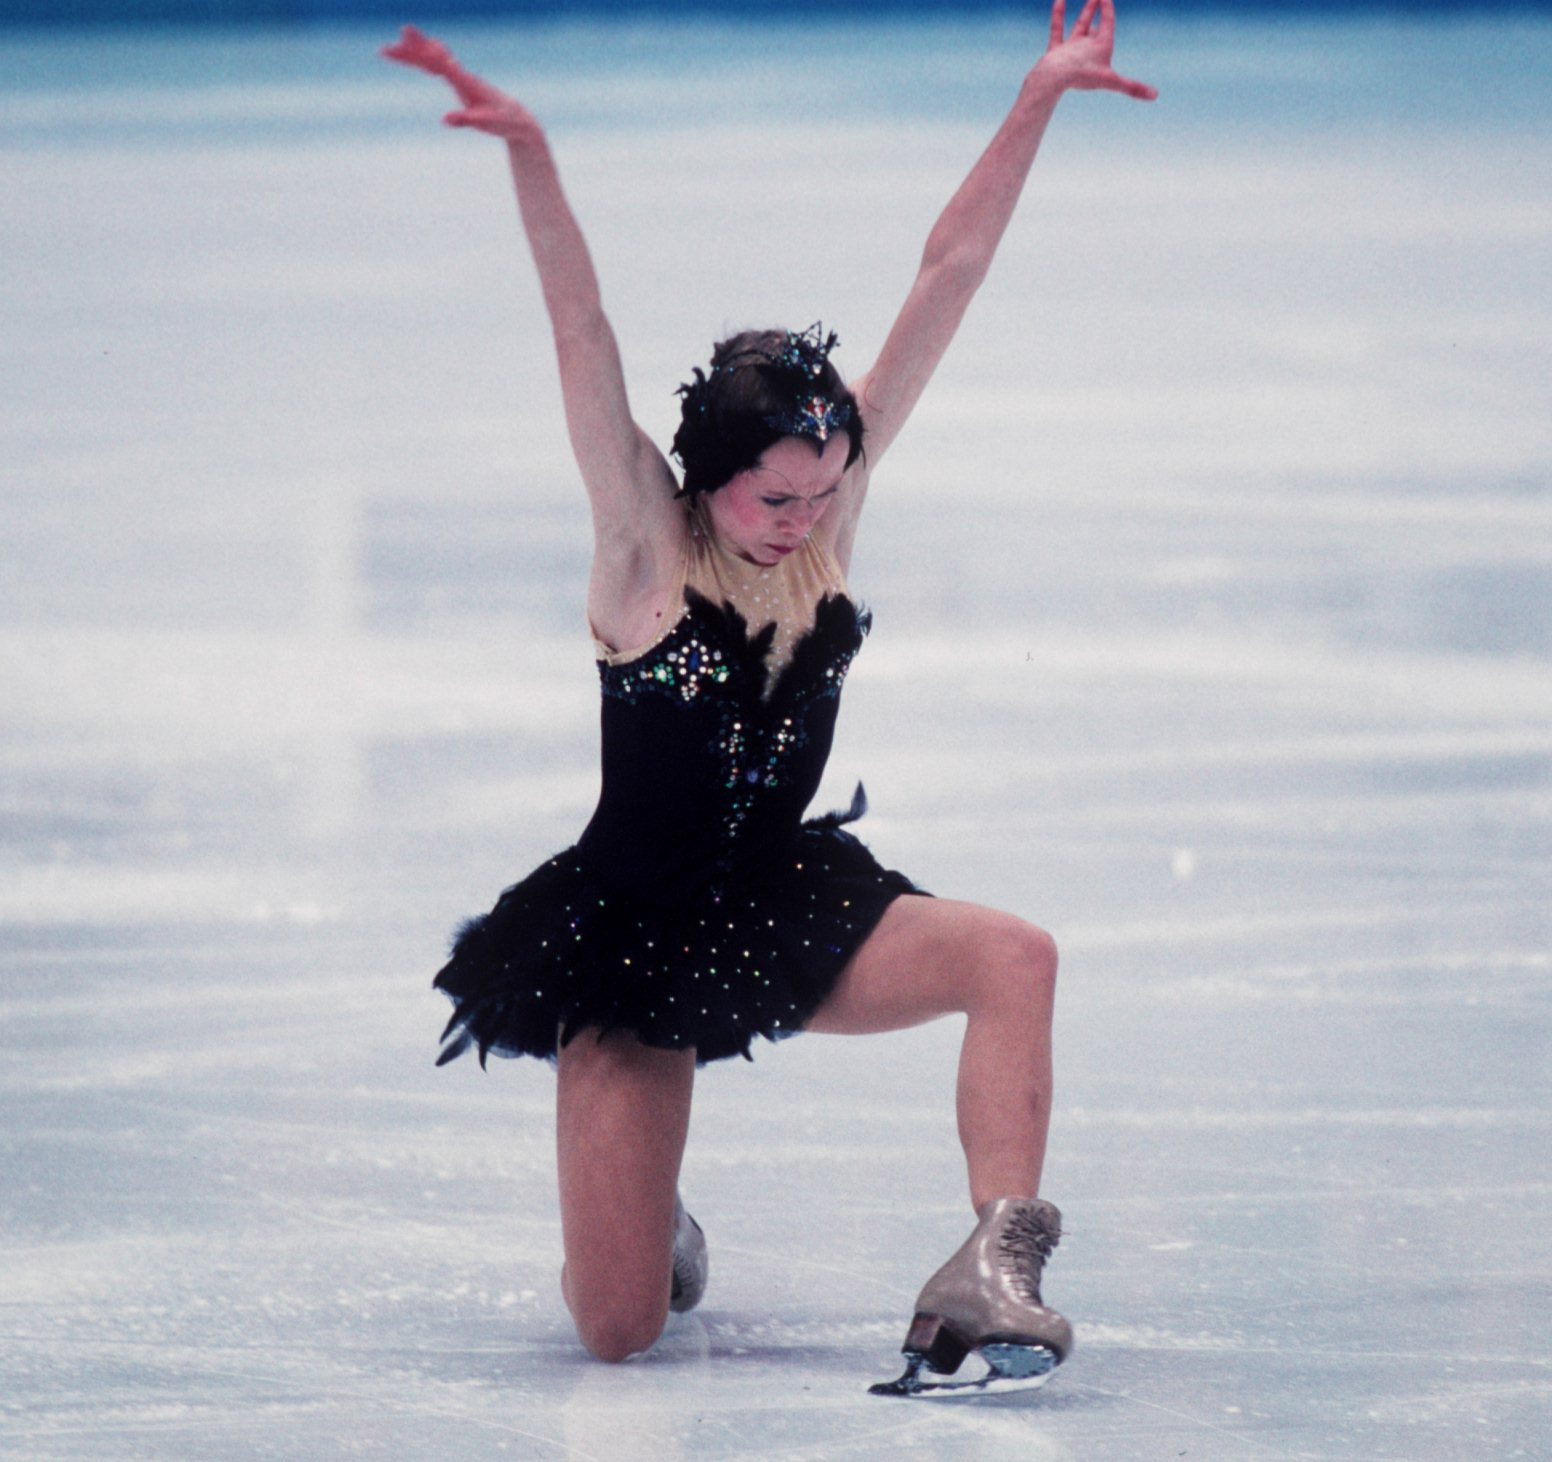 Lillehammer 1994 gold medallist set to feature in figure skating film